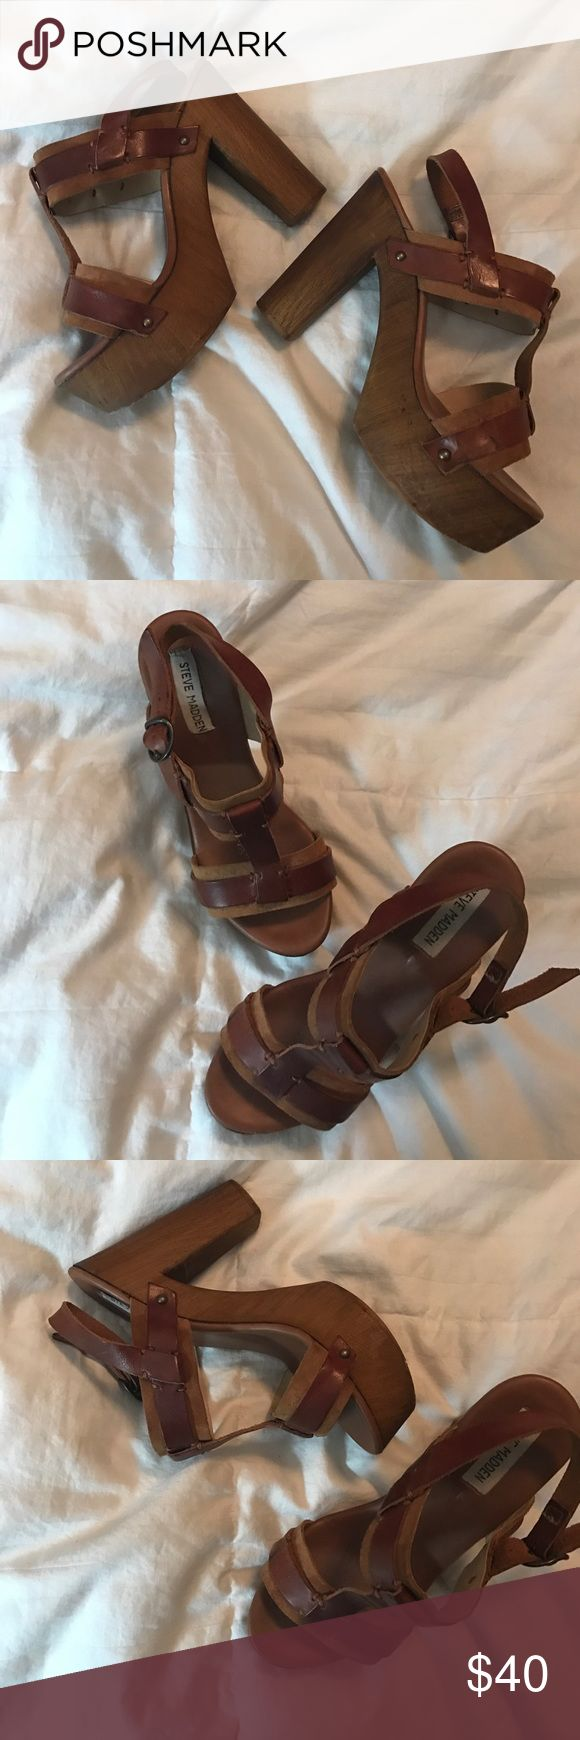 Steve Madden chunky wedges. These wedges are so cute. Great to wear with an all denim outfit. I got these last season from the Steve Madden store. Barely worn because I wear a uniform every day for work! Price is negotiable. Steve Madden Shoes Wedges